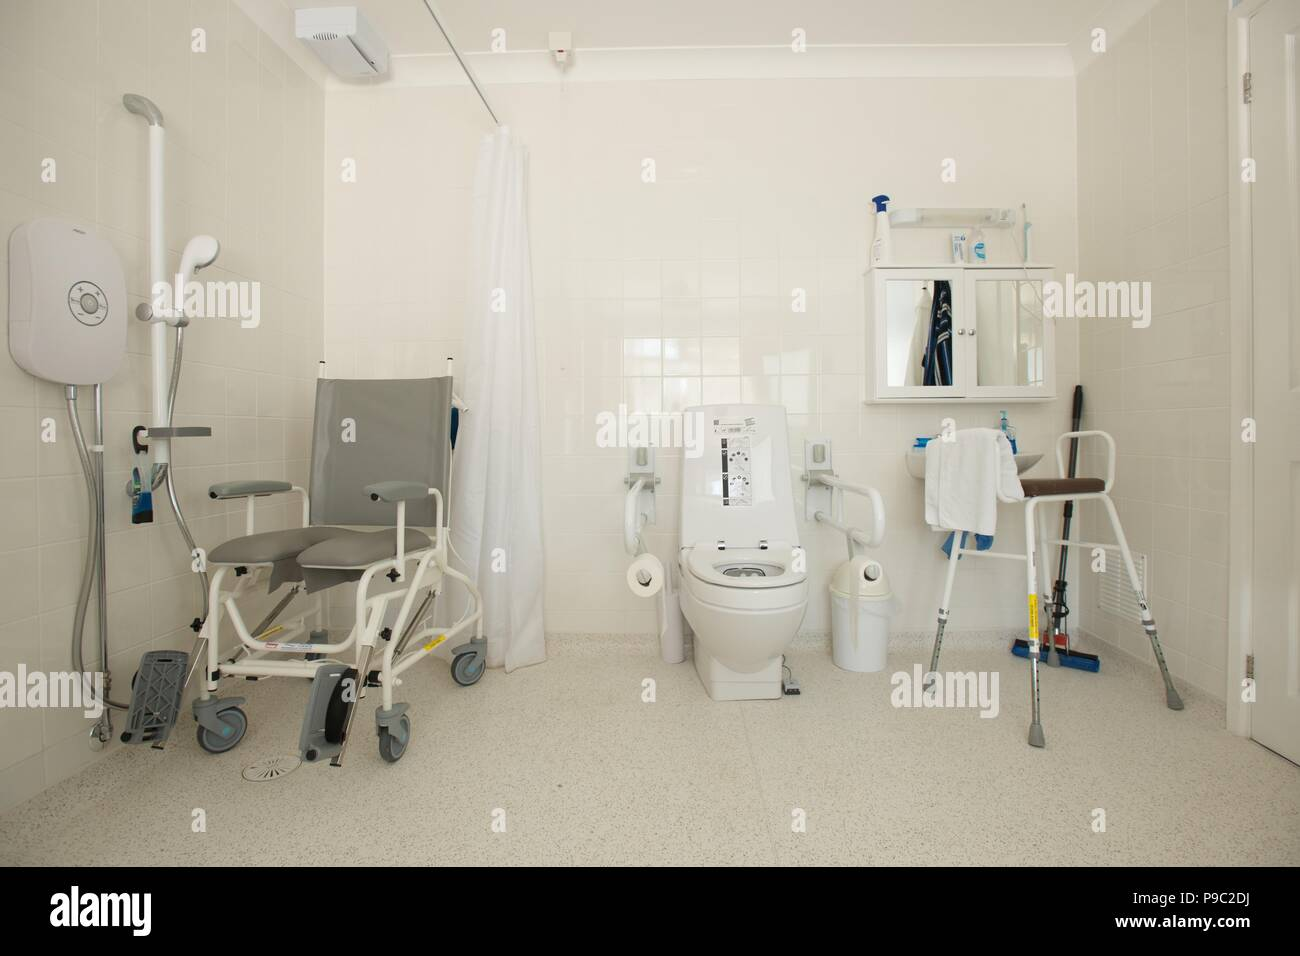 Disabled toilet and shower facility at the home of a disabled person - Stock Image